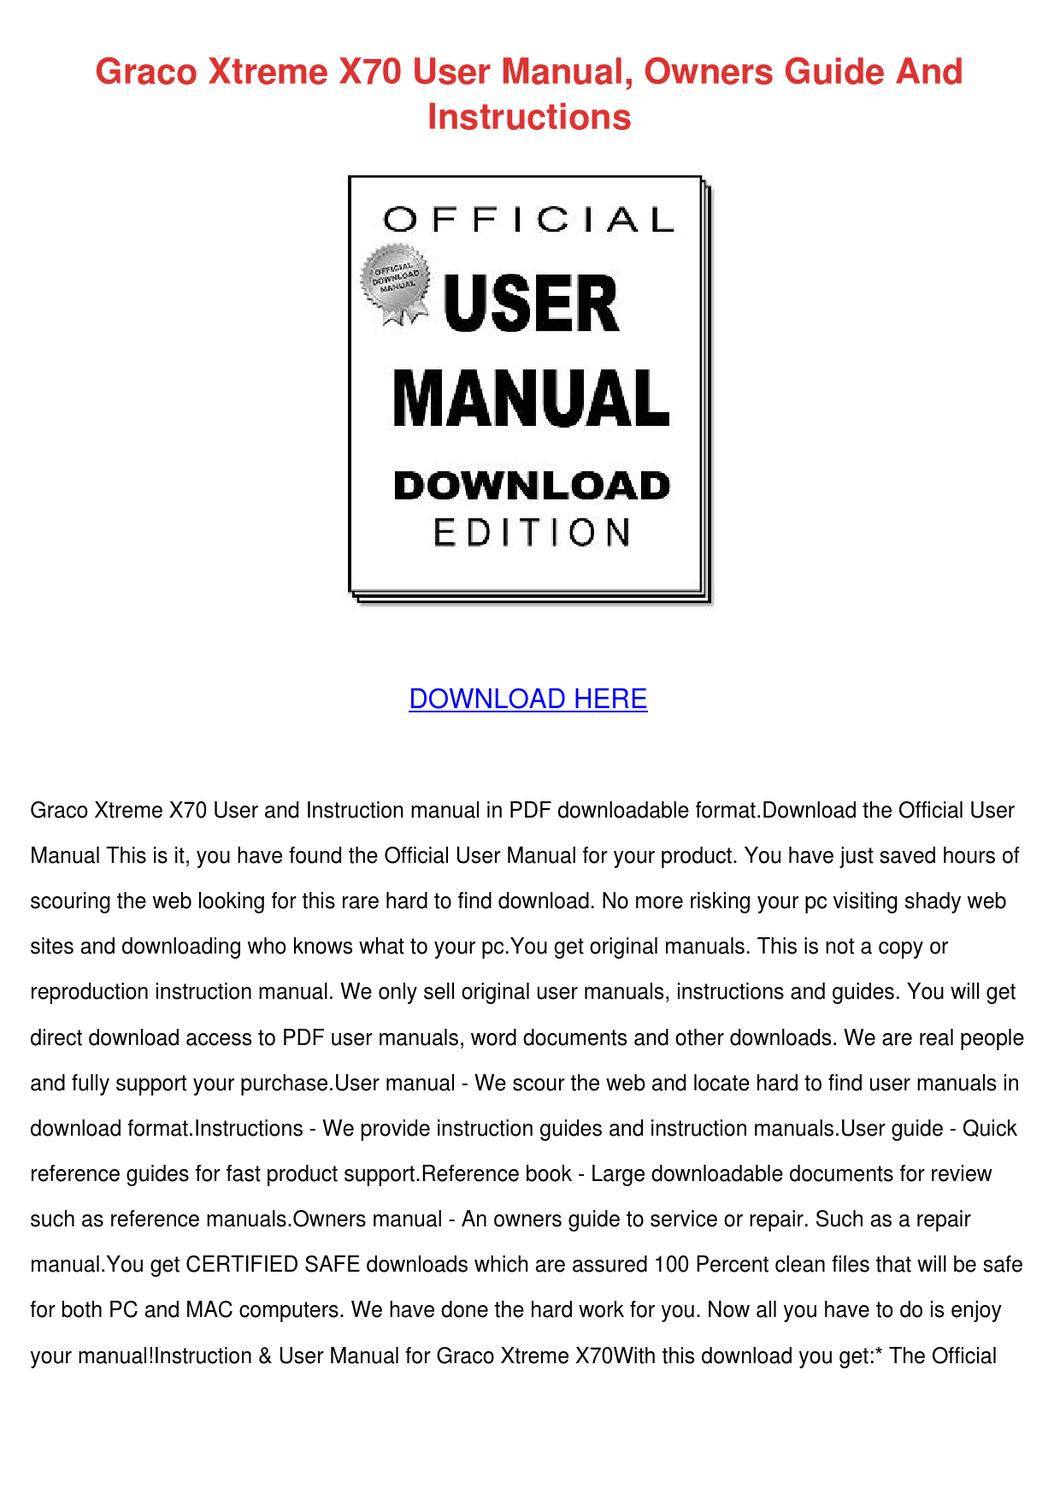 Graco Xtreme X70 User Manual Owners Guide And by Temika Jawad - issuu